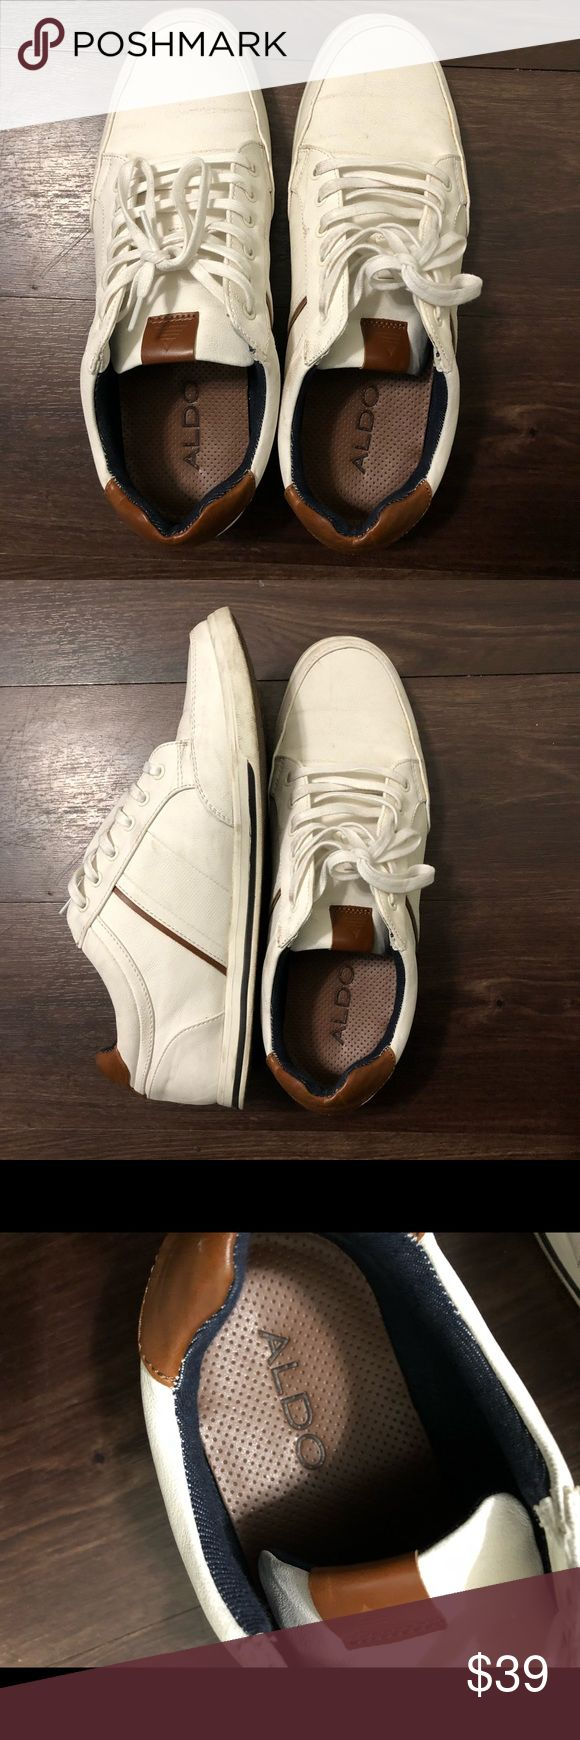 Aldo Men's Loafers - Size 9.5 *ALMOST NEW* *ALMOST NEW* ALDO Men's Shoes - Size 9.5 #wore once - almost new #box NOT included #authentic #white fabric+brown leather #good for daily  #will ship in 1-2 days #pls leave any questions via comment :D Aldo Shoes Loafers & Slip-Ons